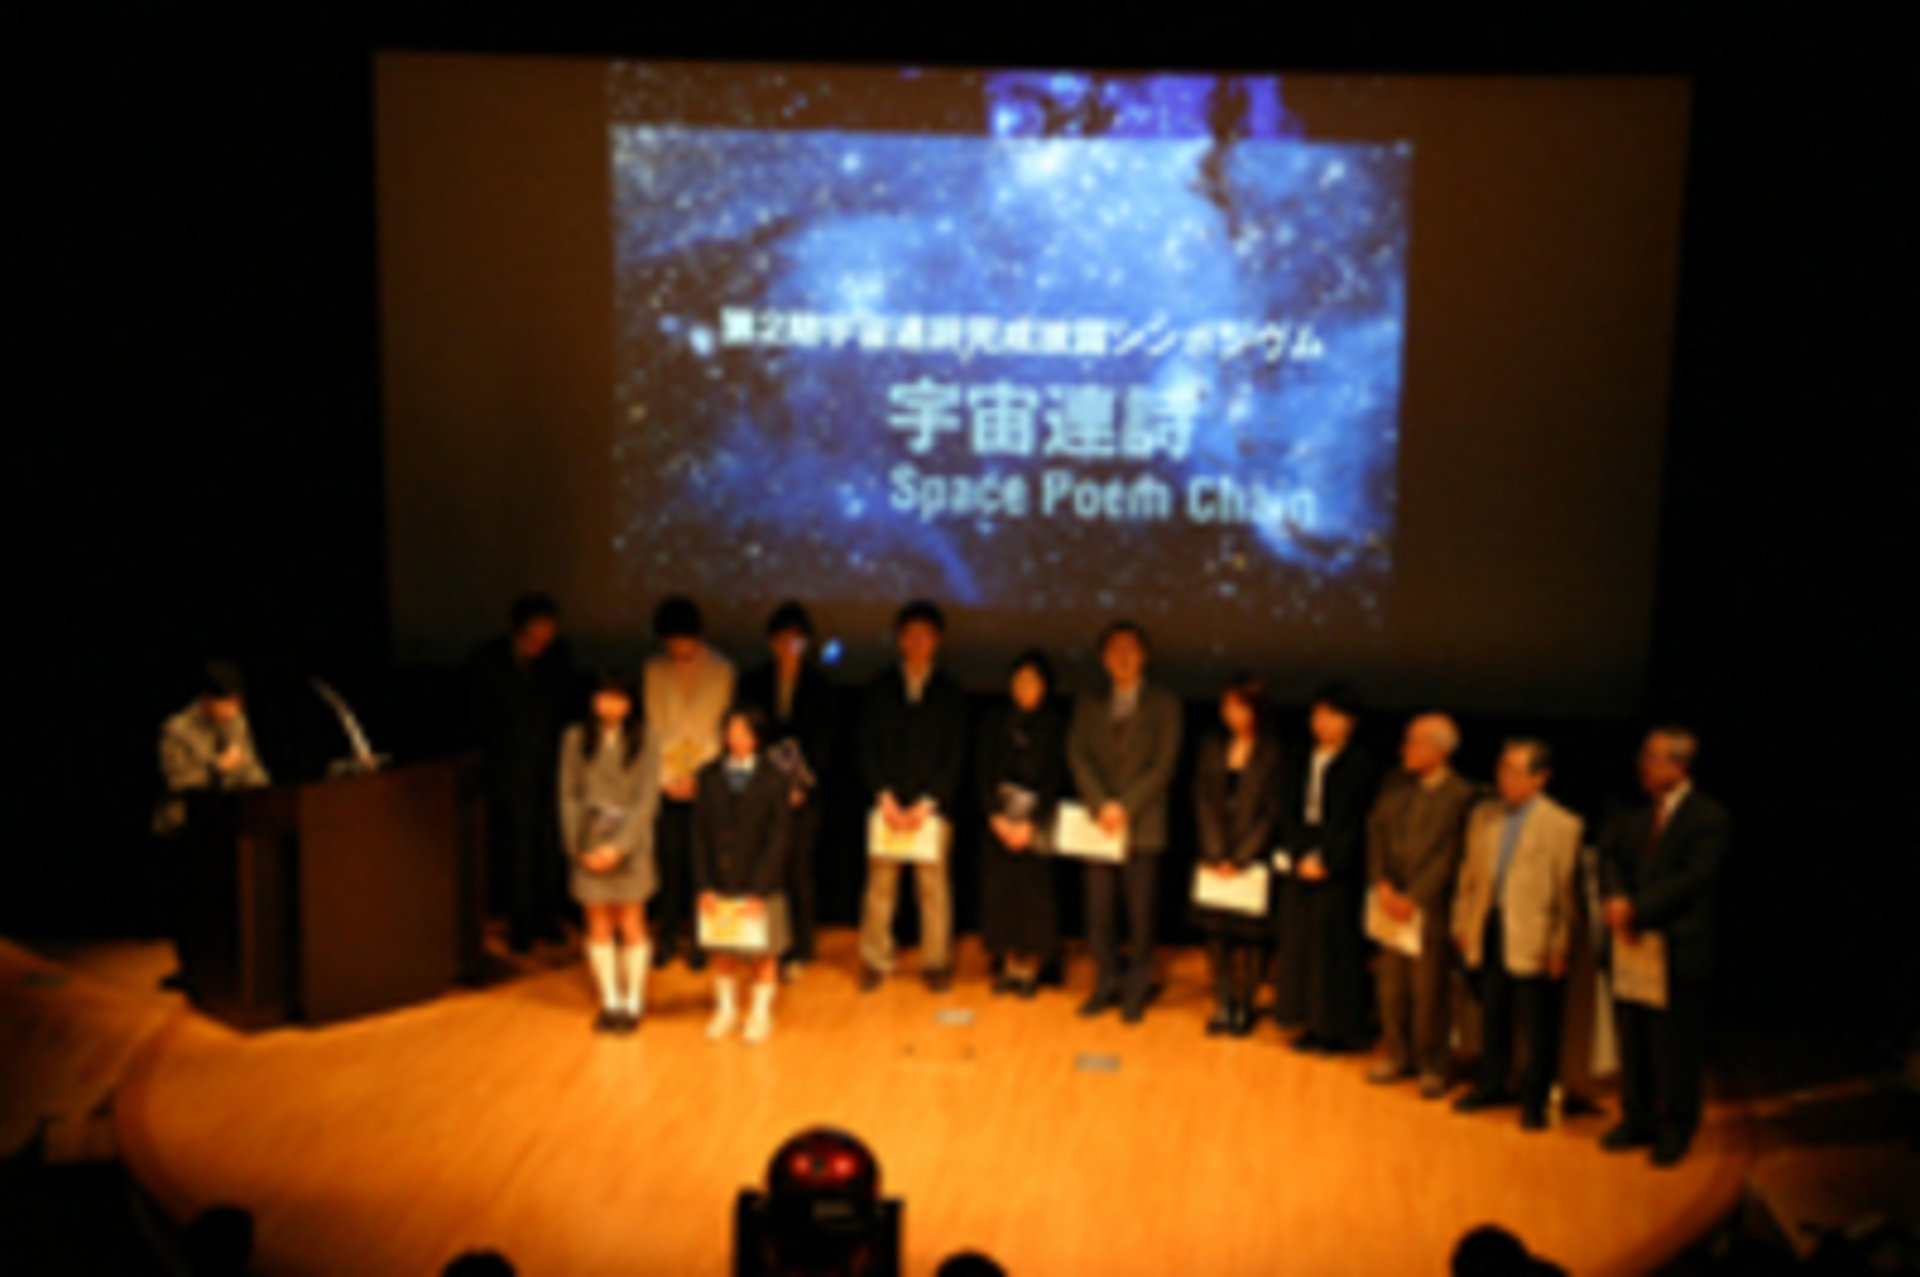 Ucyu Renshi Space Poem Chain Connecting Global People